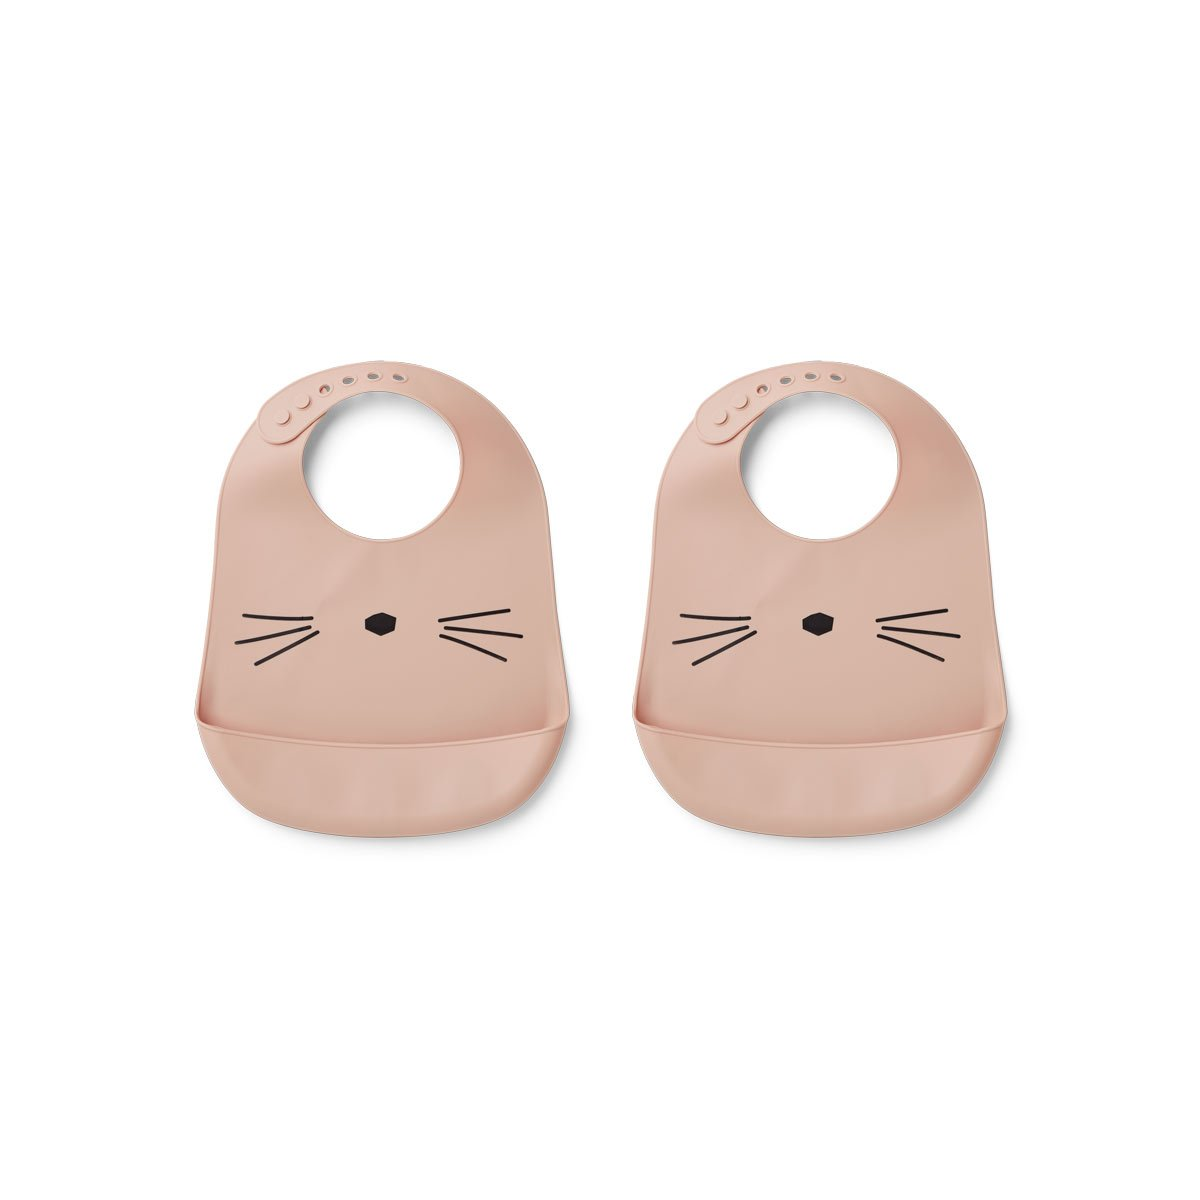 Tilda Silicone Bib 2 Pack - Cat rose